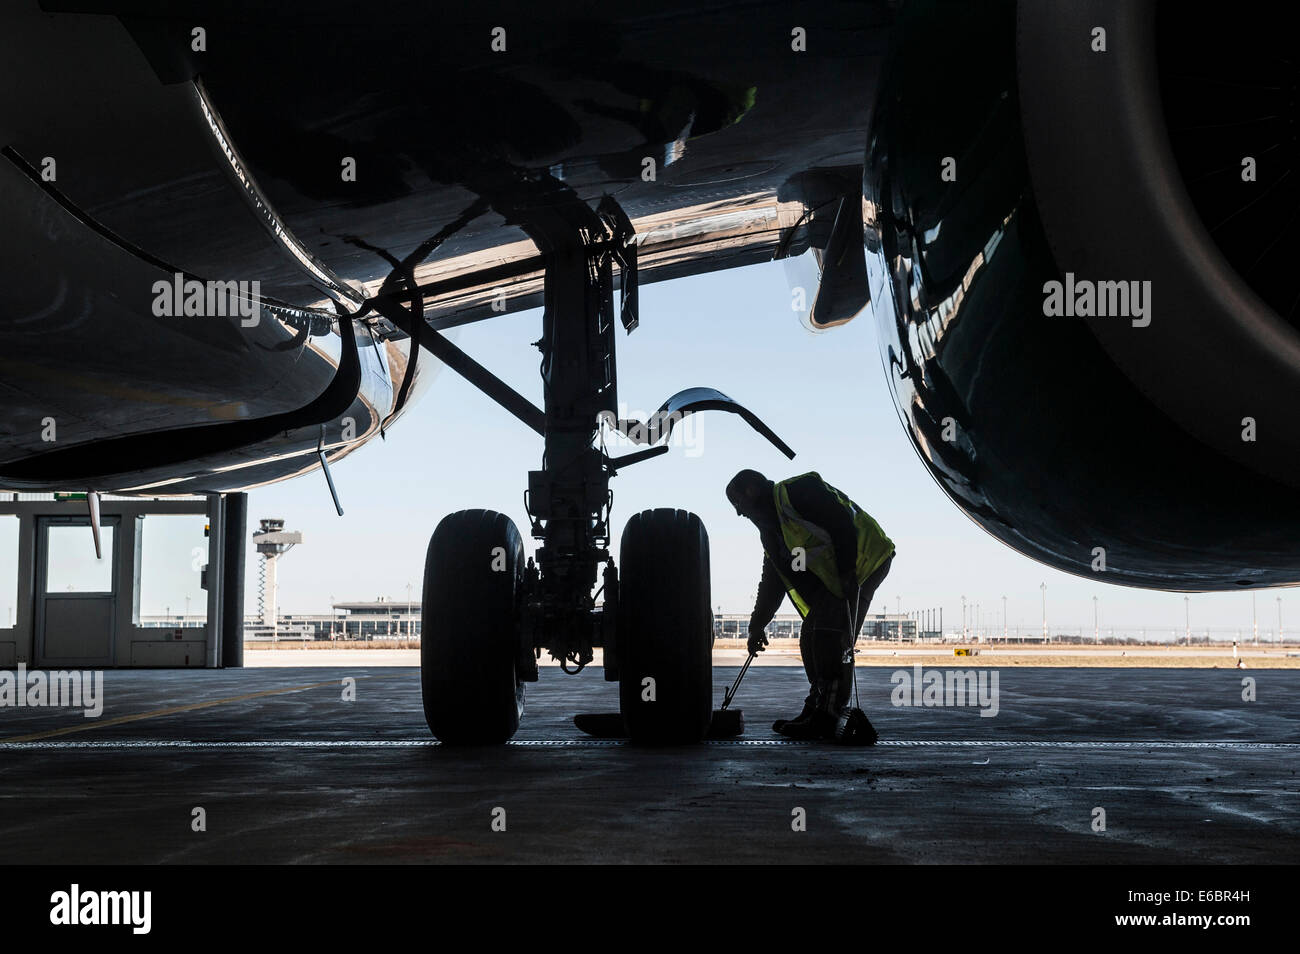 Man working on the undercarriage of an aircraft, Airport Berlin Brandenburg International, BBI, Berlin, Germany - Stock Image